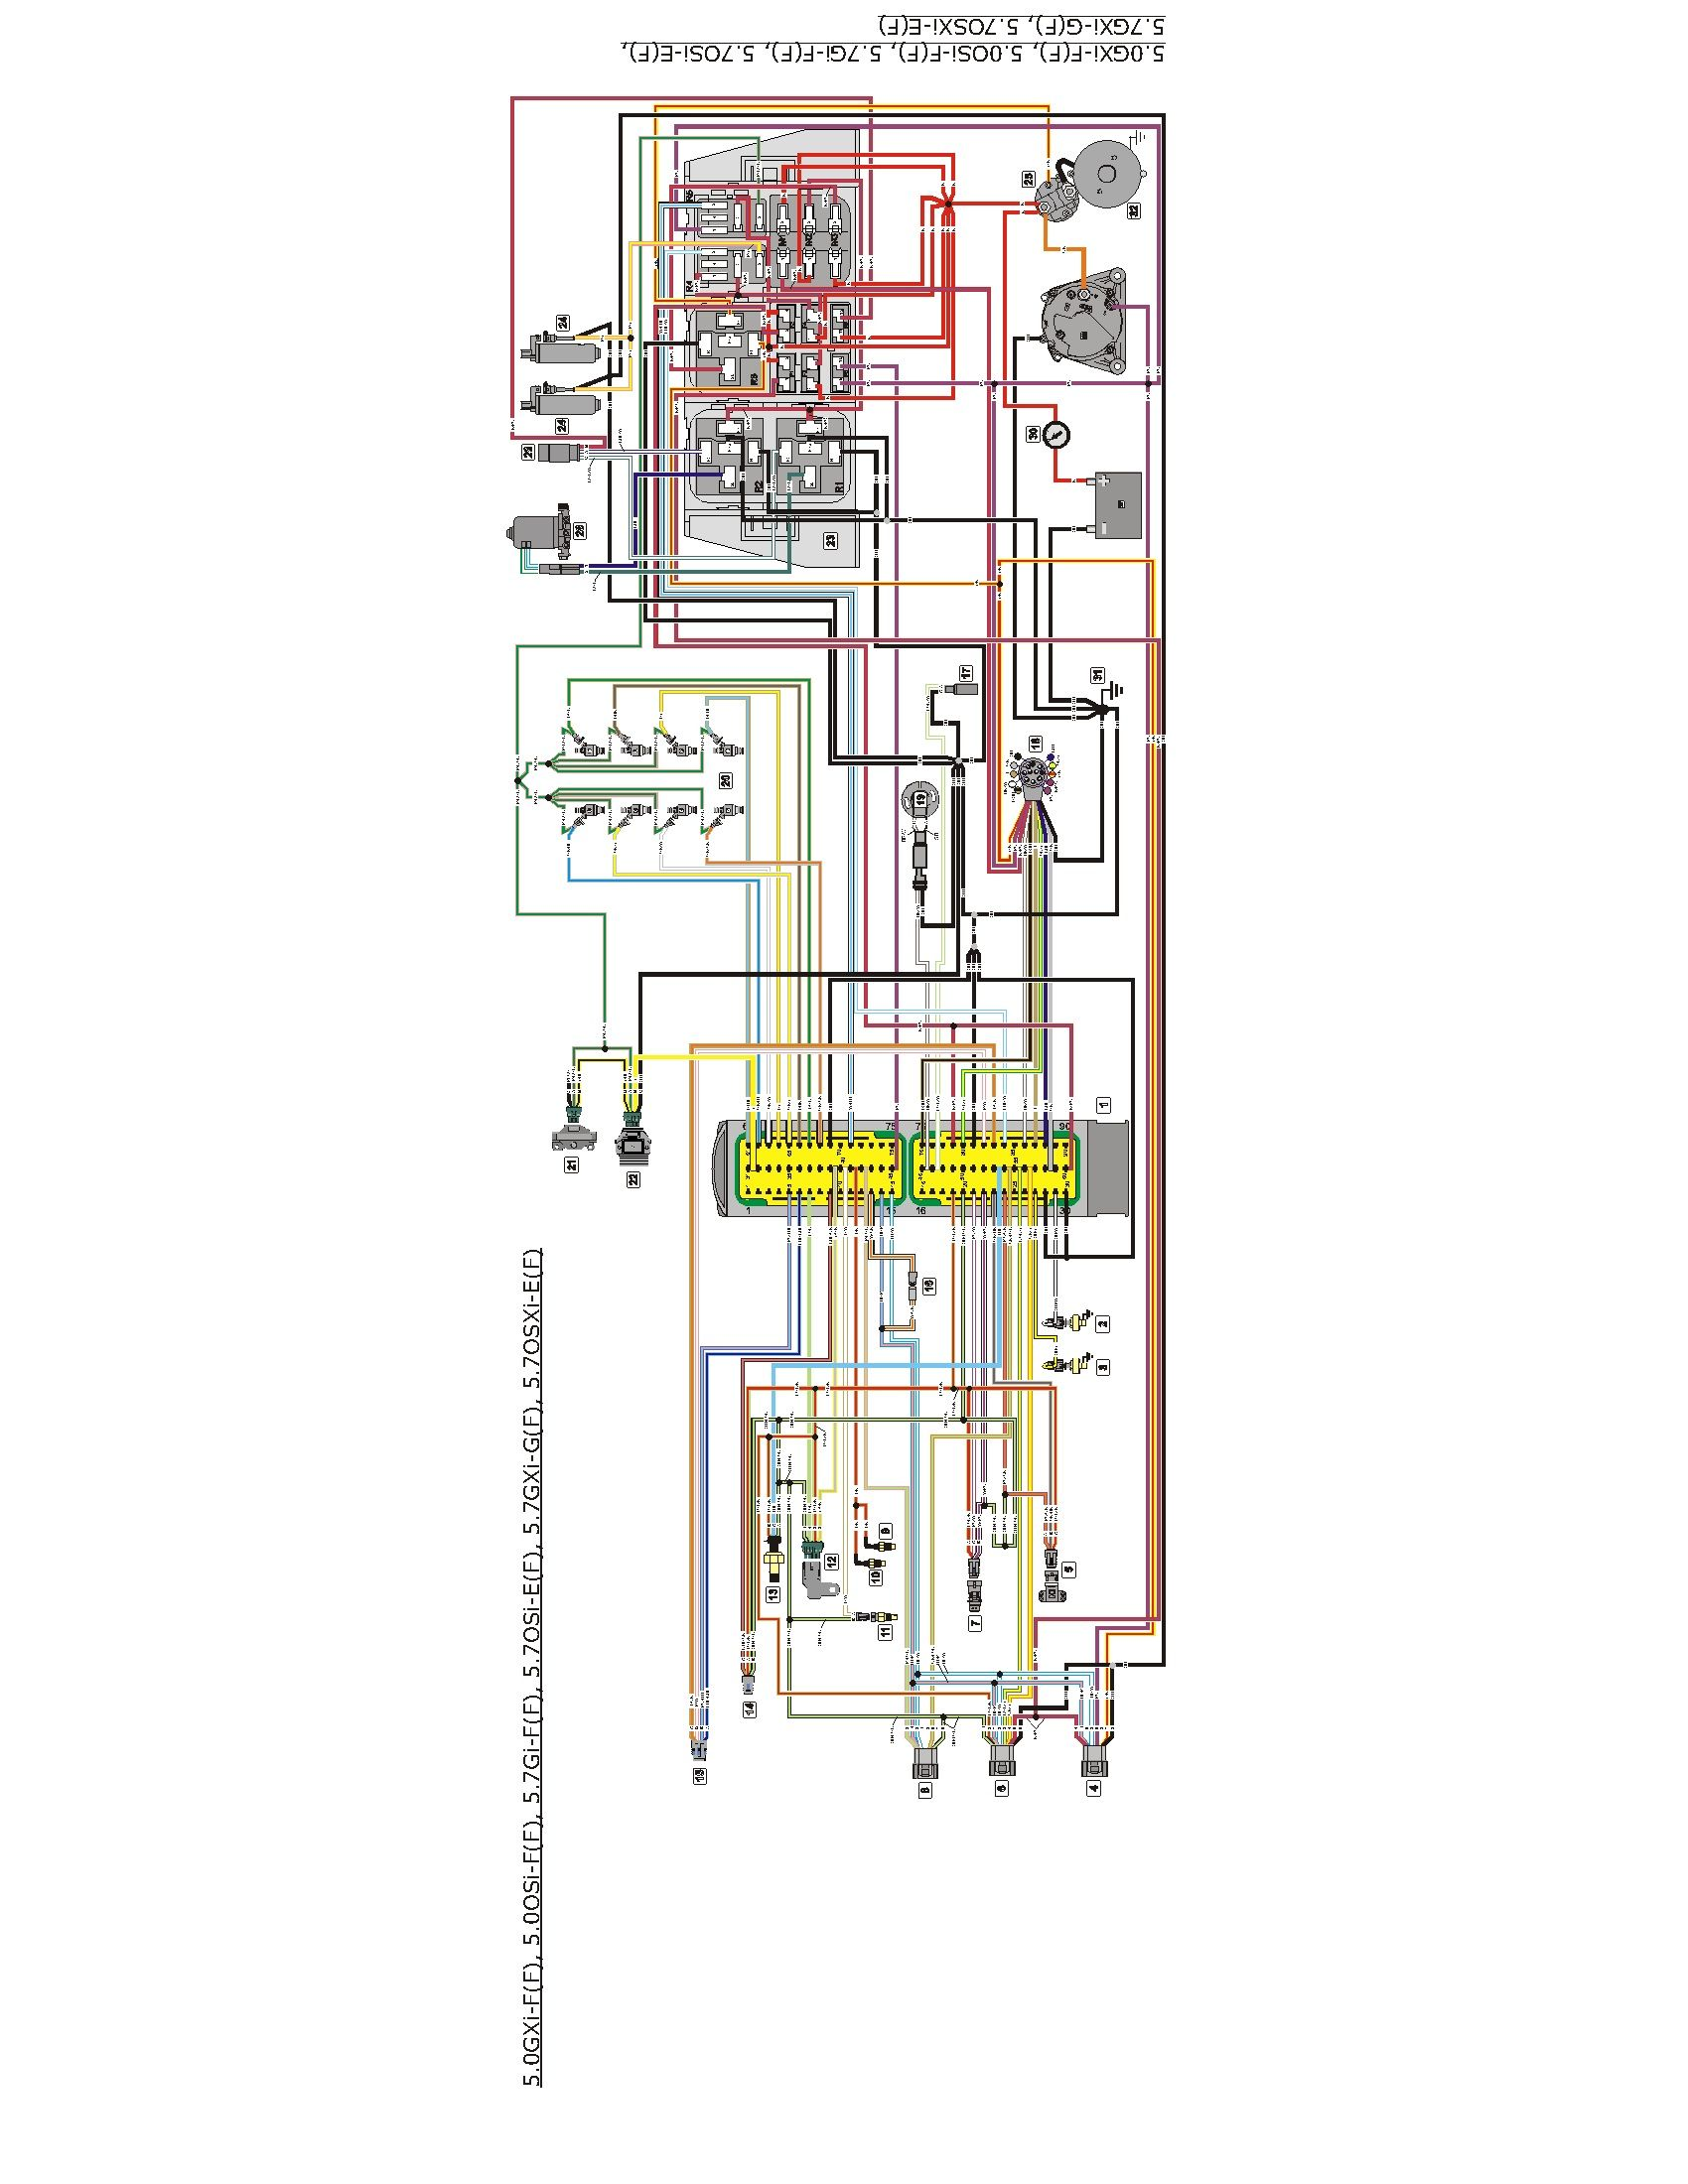 volvo penta 5 7 engine wiring diagram boat pinterest volvo rh pinterest com volvo  d12 engine wiring diagram volvo s40 engine wiring diagram